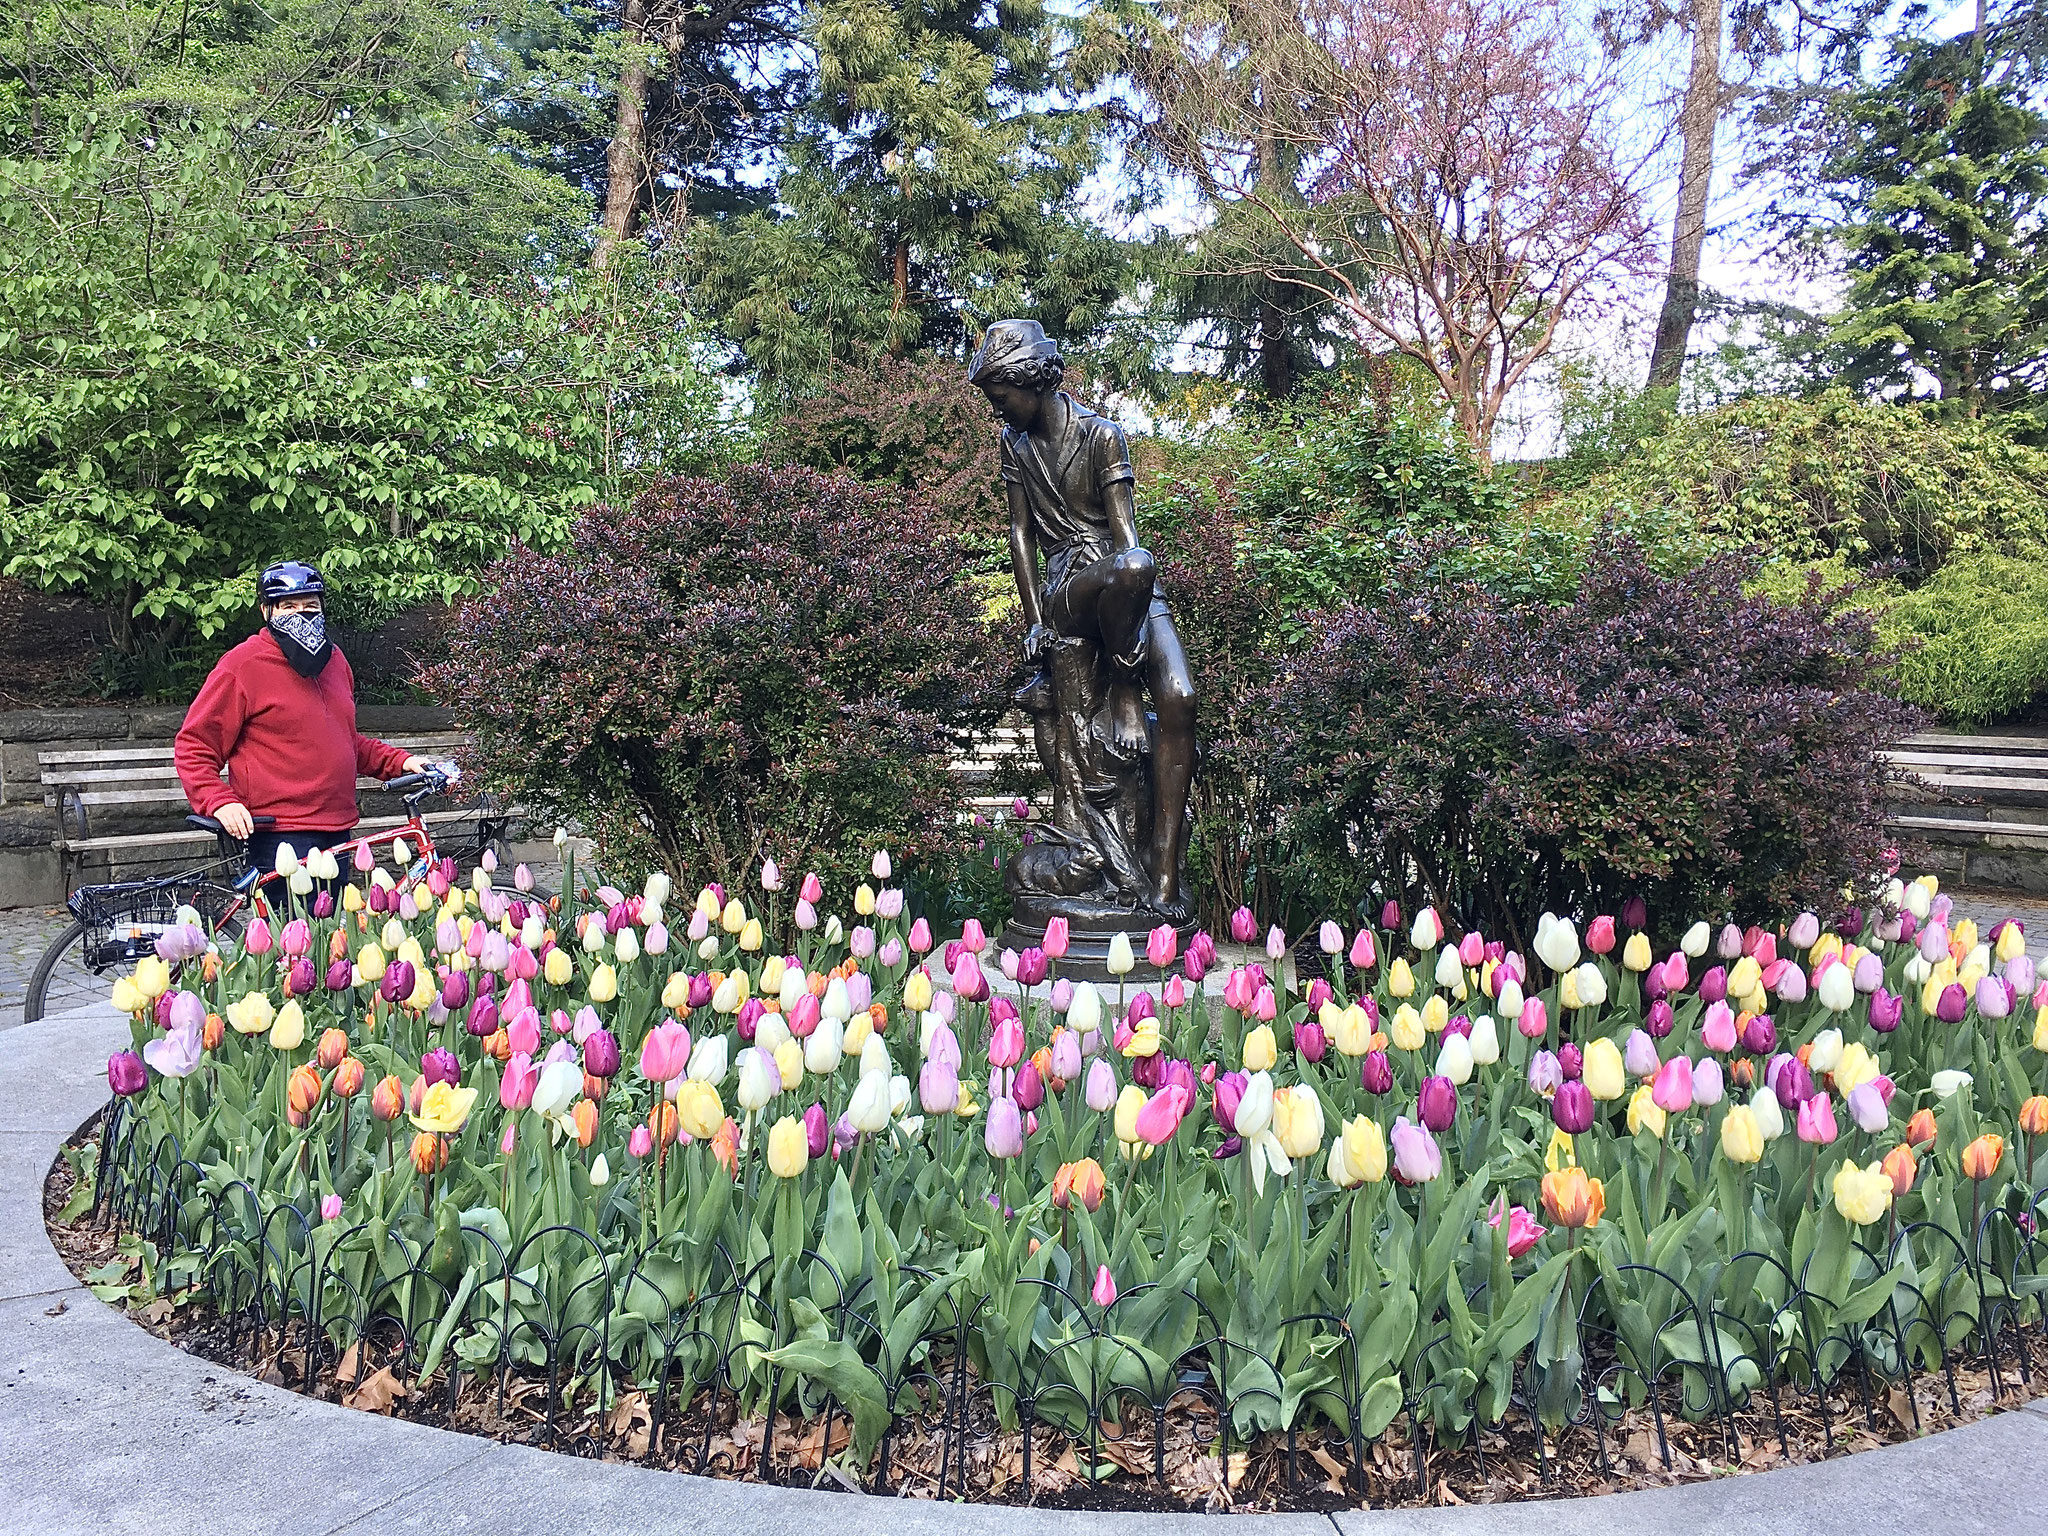 The Bandit 34, he enjoys the tulips in Carl Schurz Park, NYC April 25, 2021